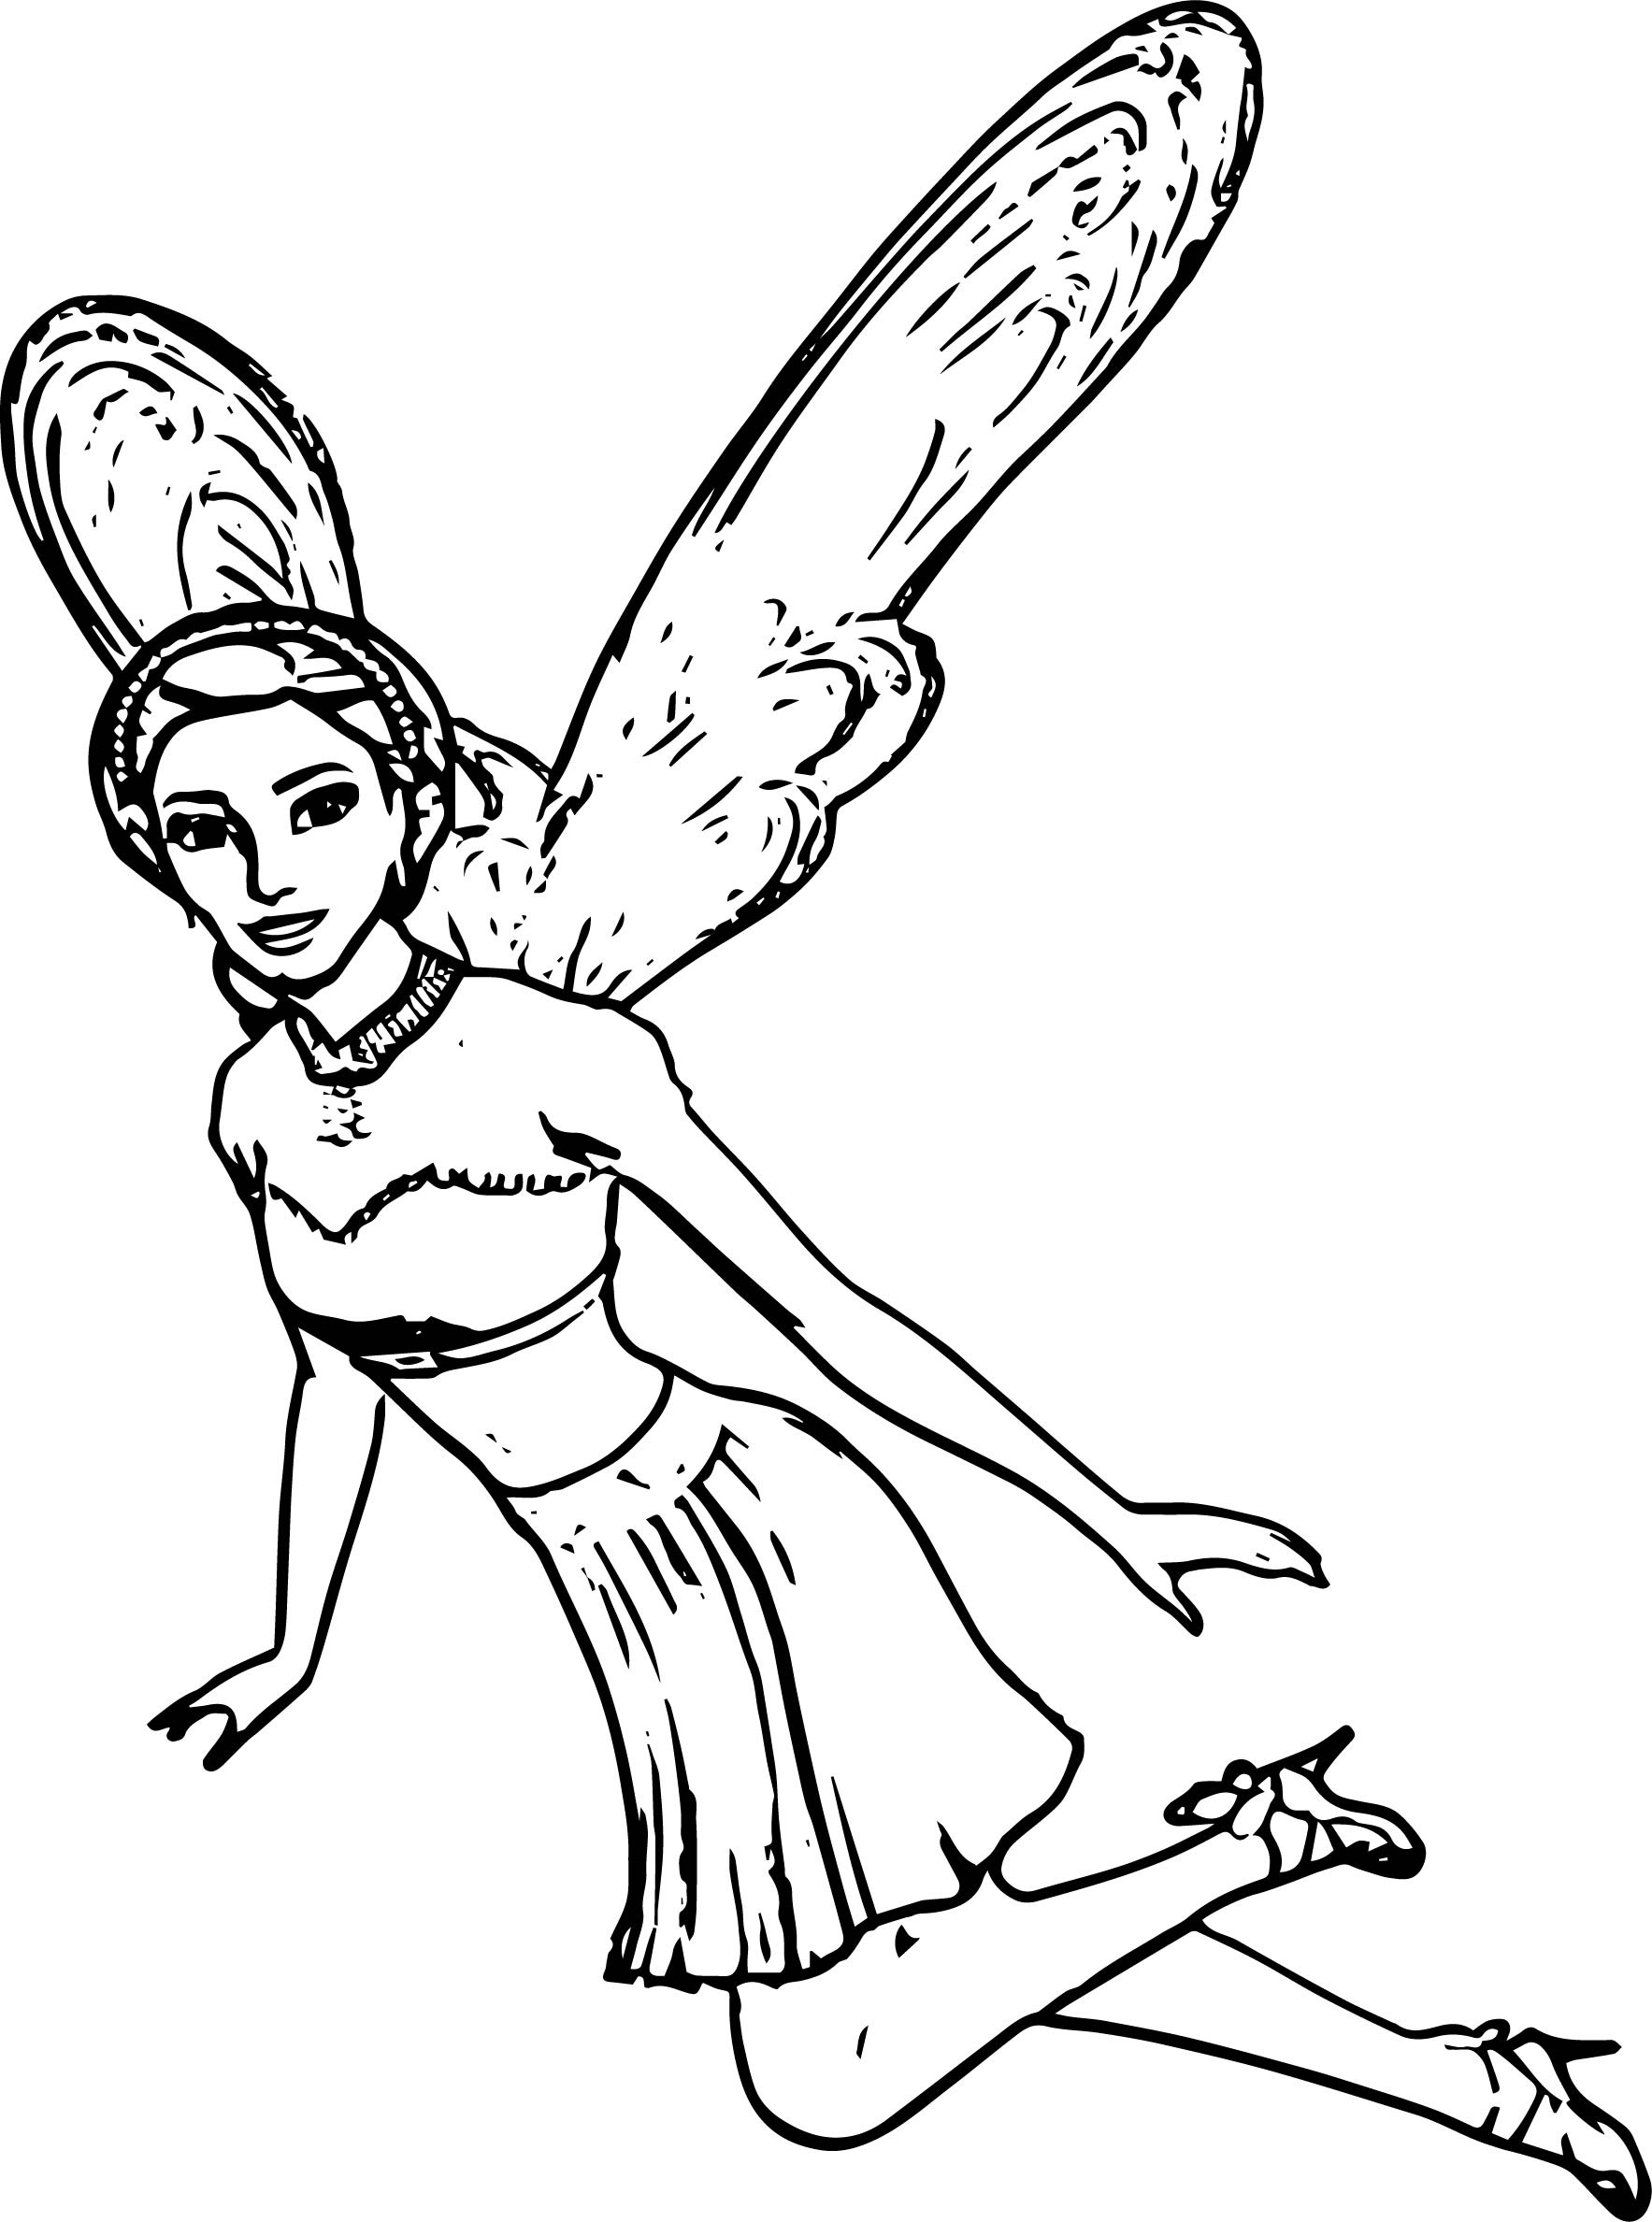 Angel Fly Barbie Coloring Page | Wecoloringpage.com